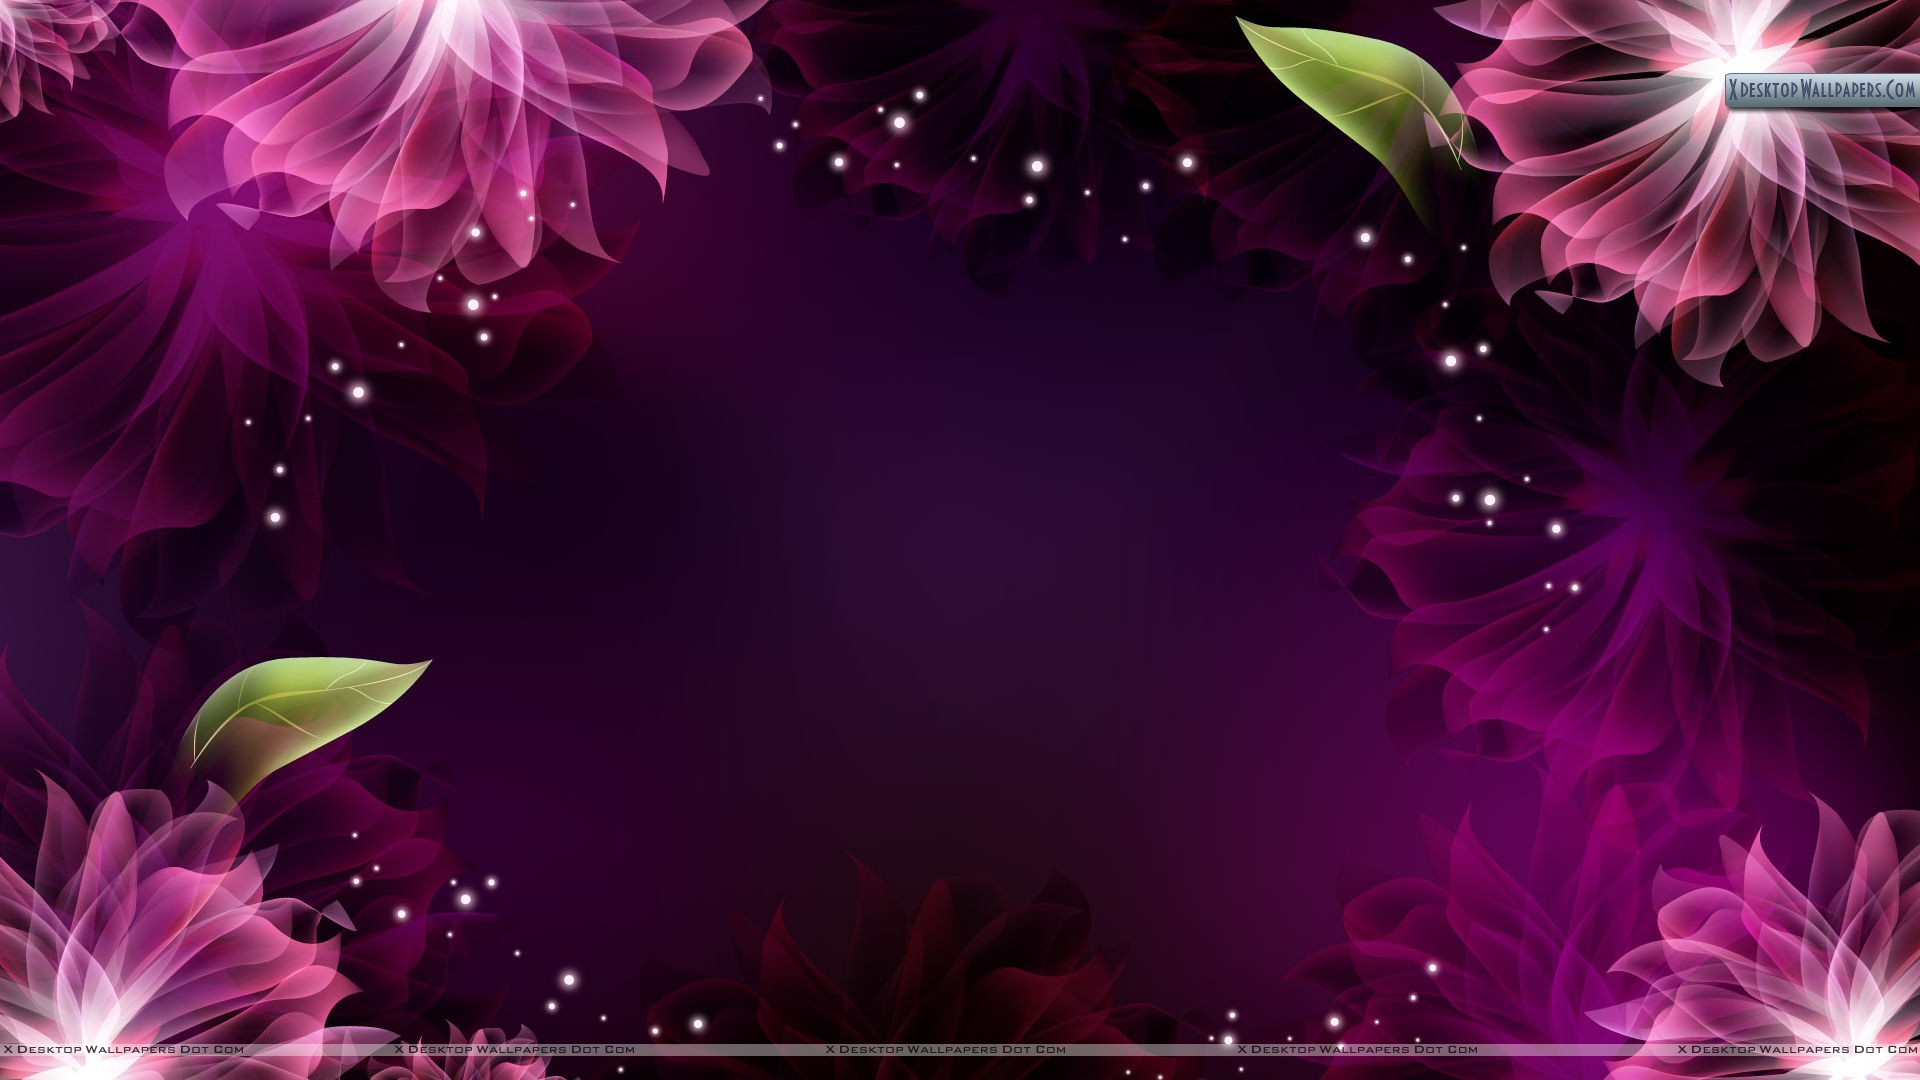 Free Download Abstract Flower Backgrounds Hd Wallpaper